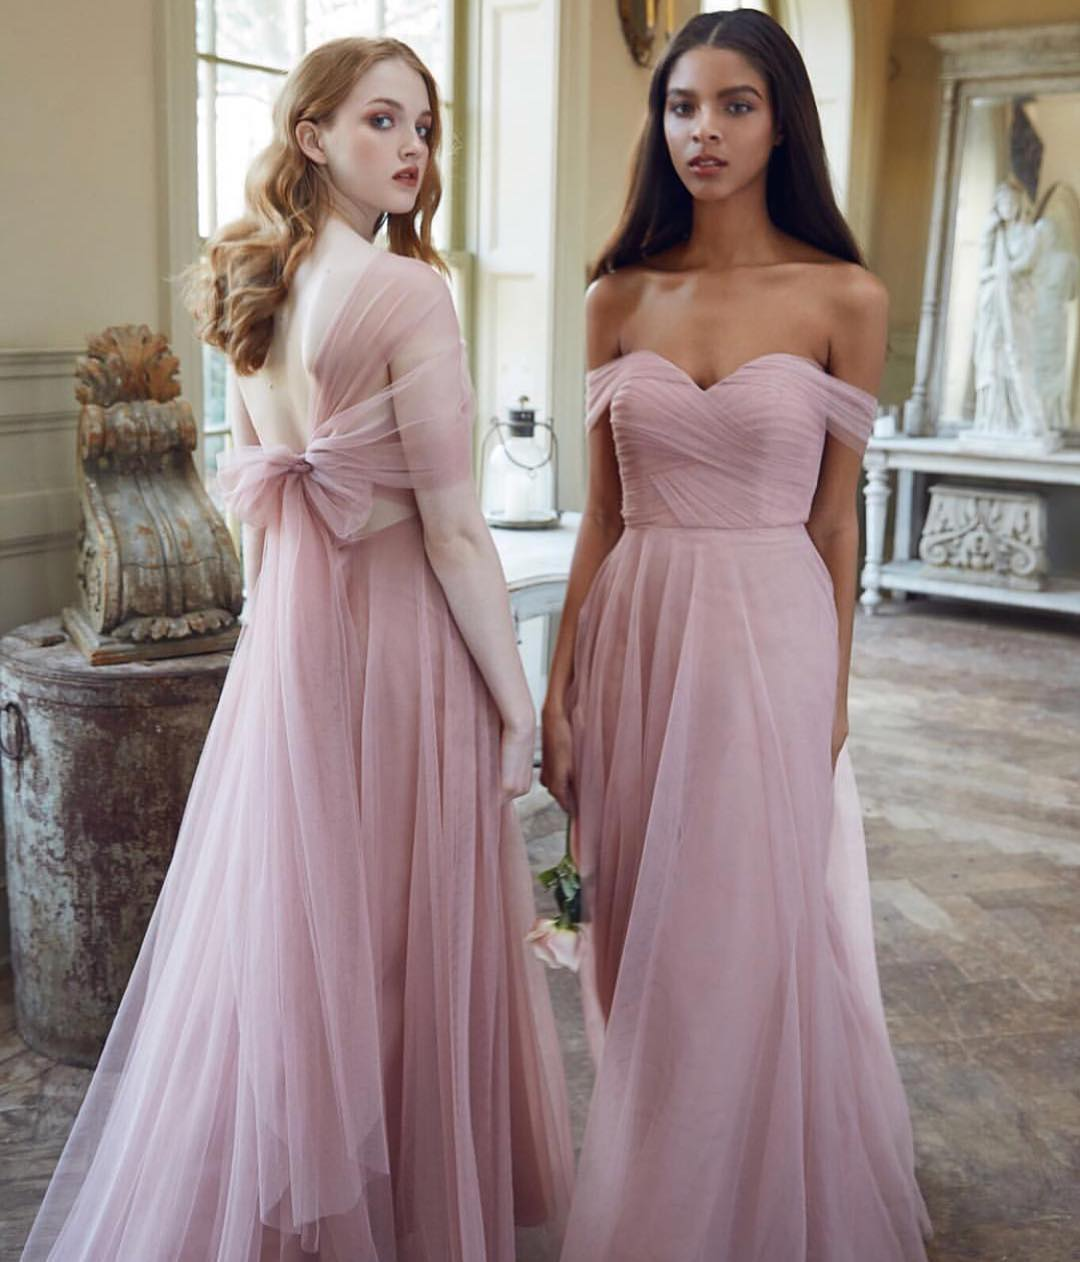 enjoy bottom price save up to 80% shopping Romantic Pink Tulle Multiway Bridesmaid Dresses from modsele